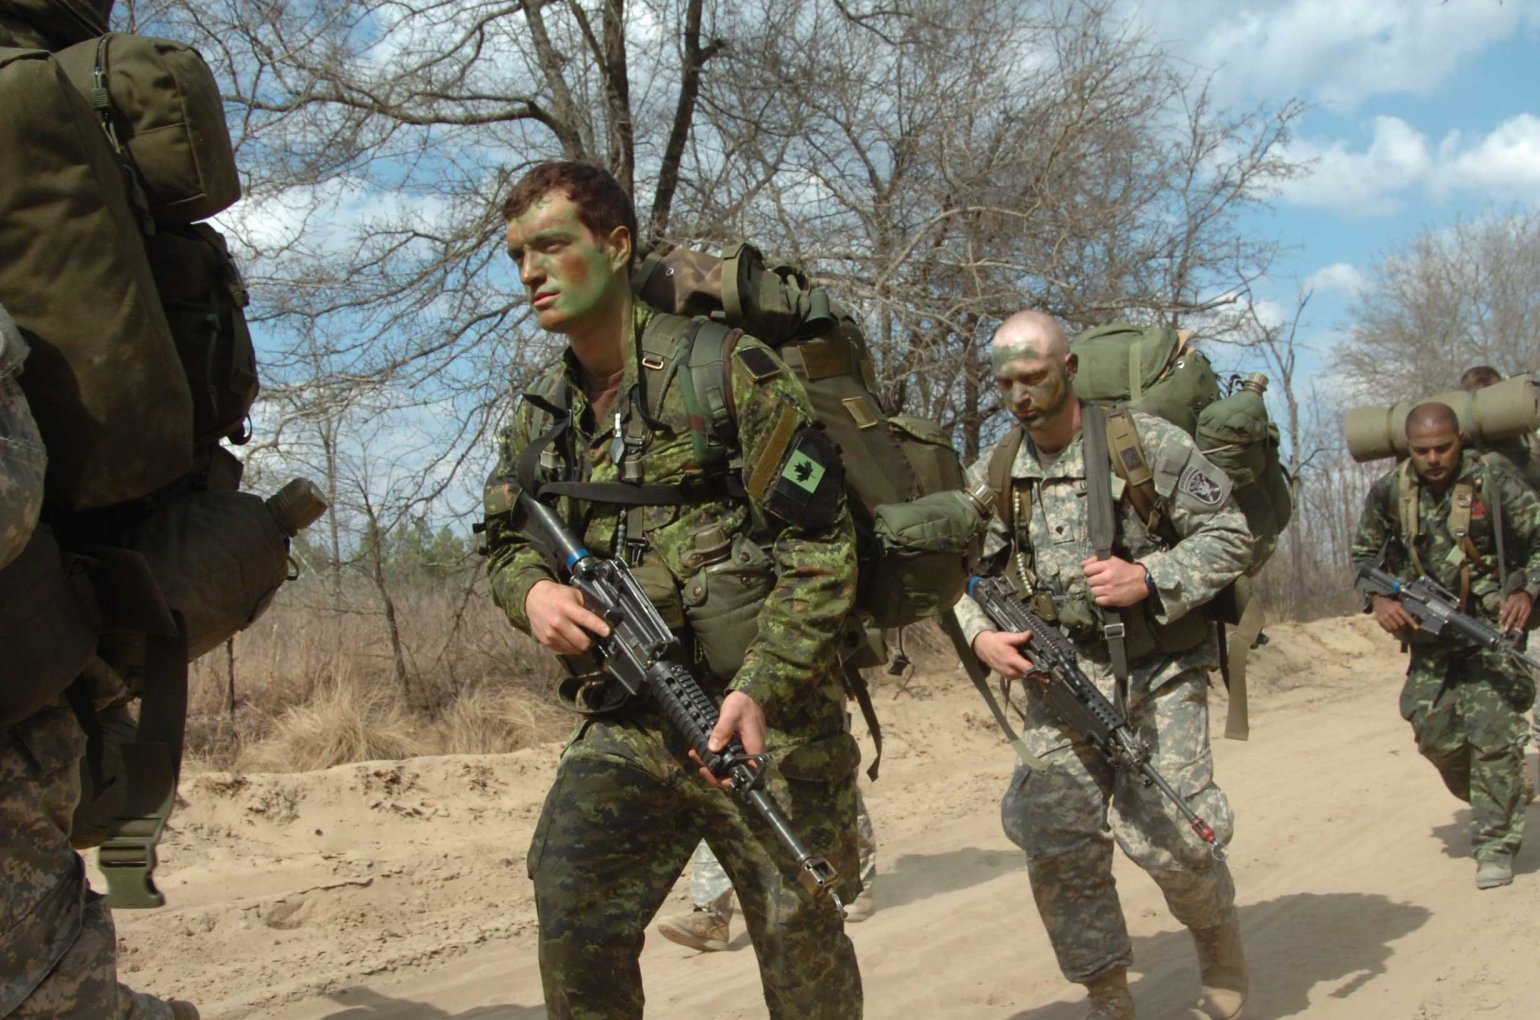 Canadian soldier on the US Army SF 'Q' course.